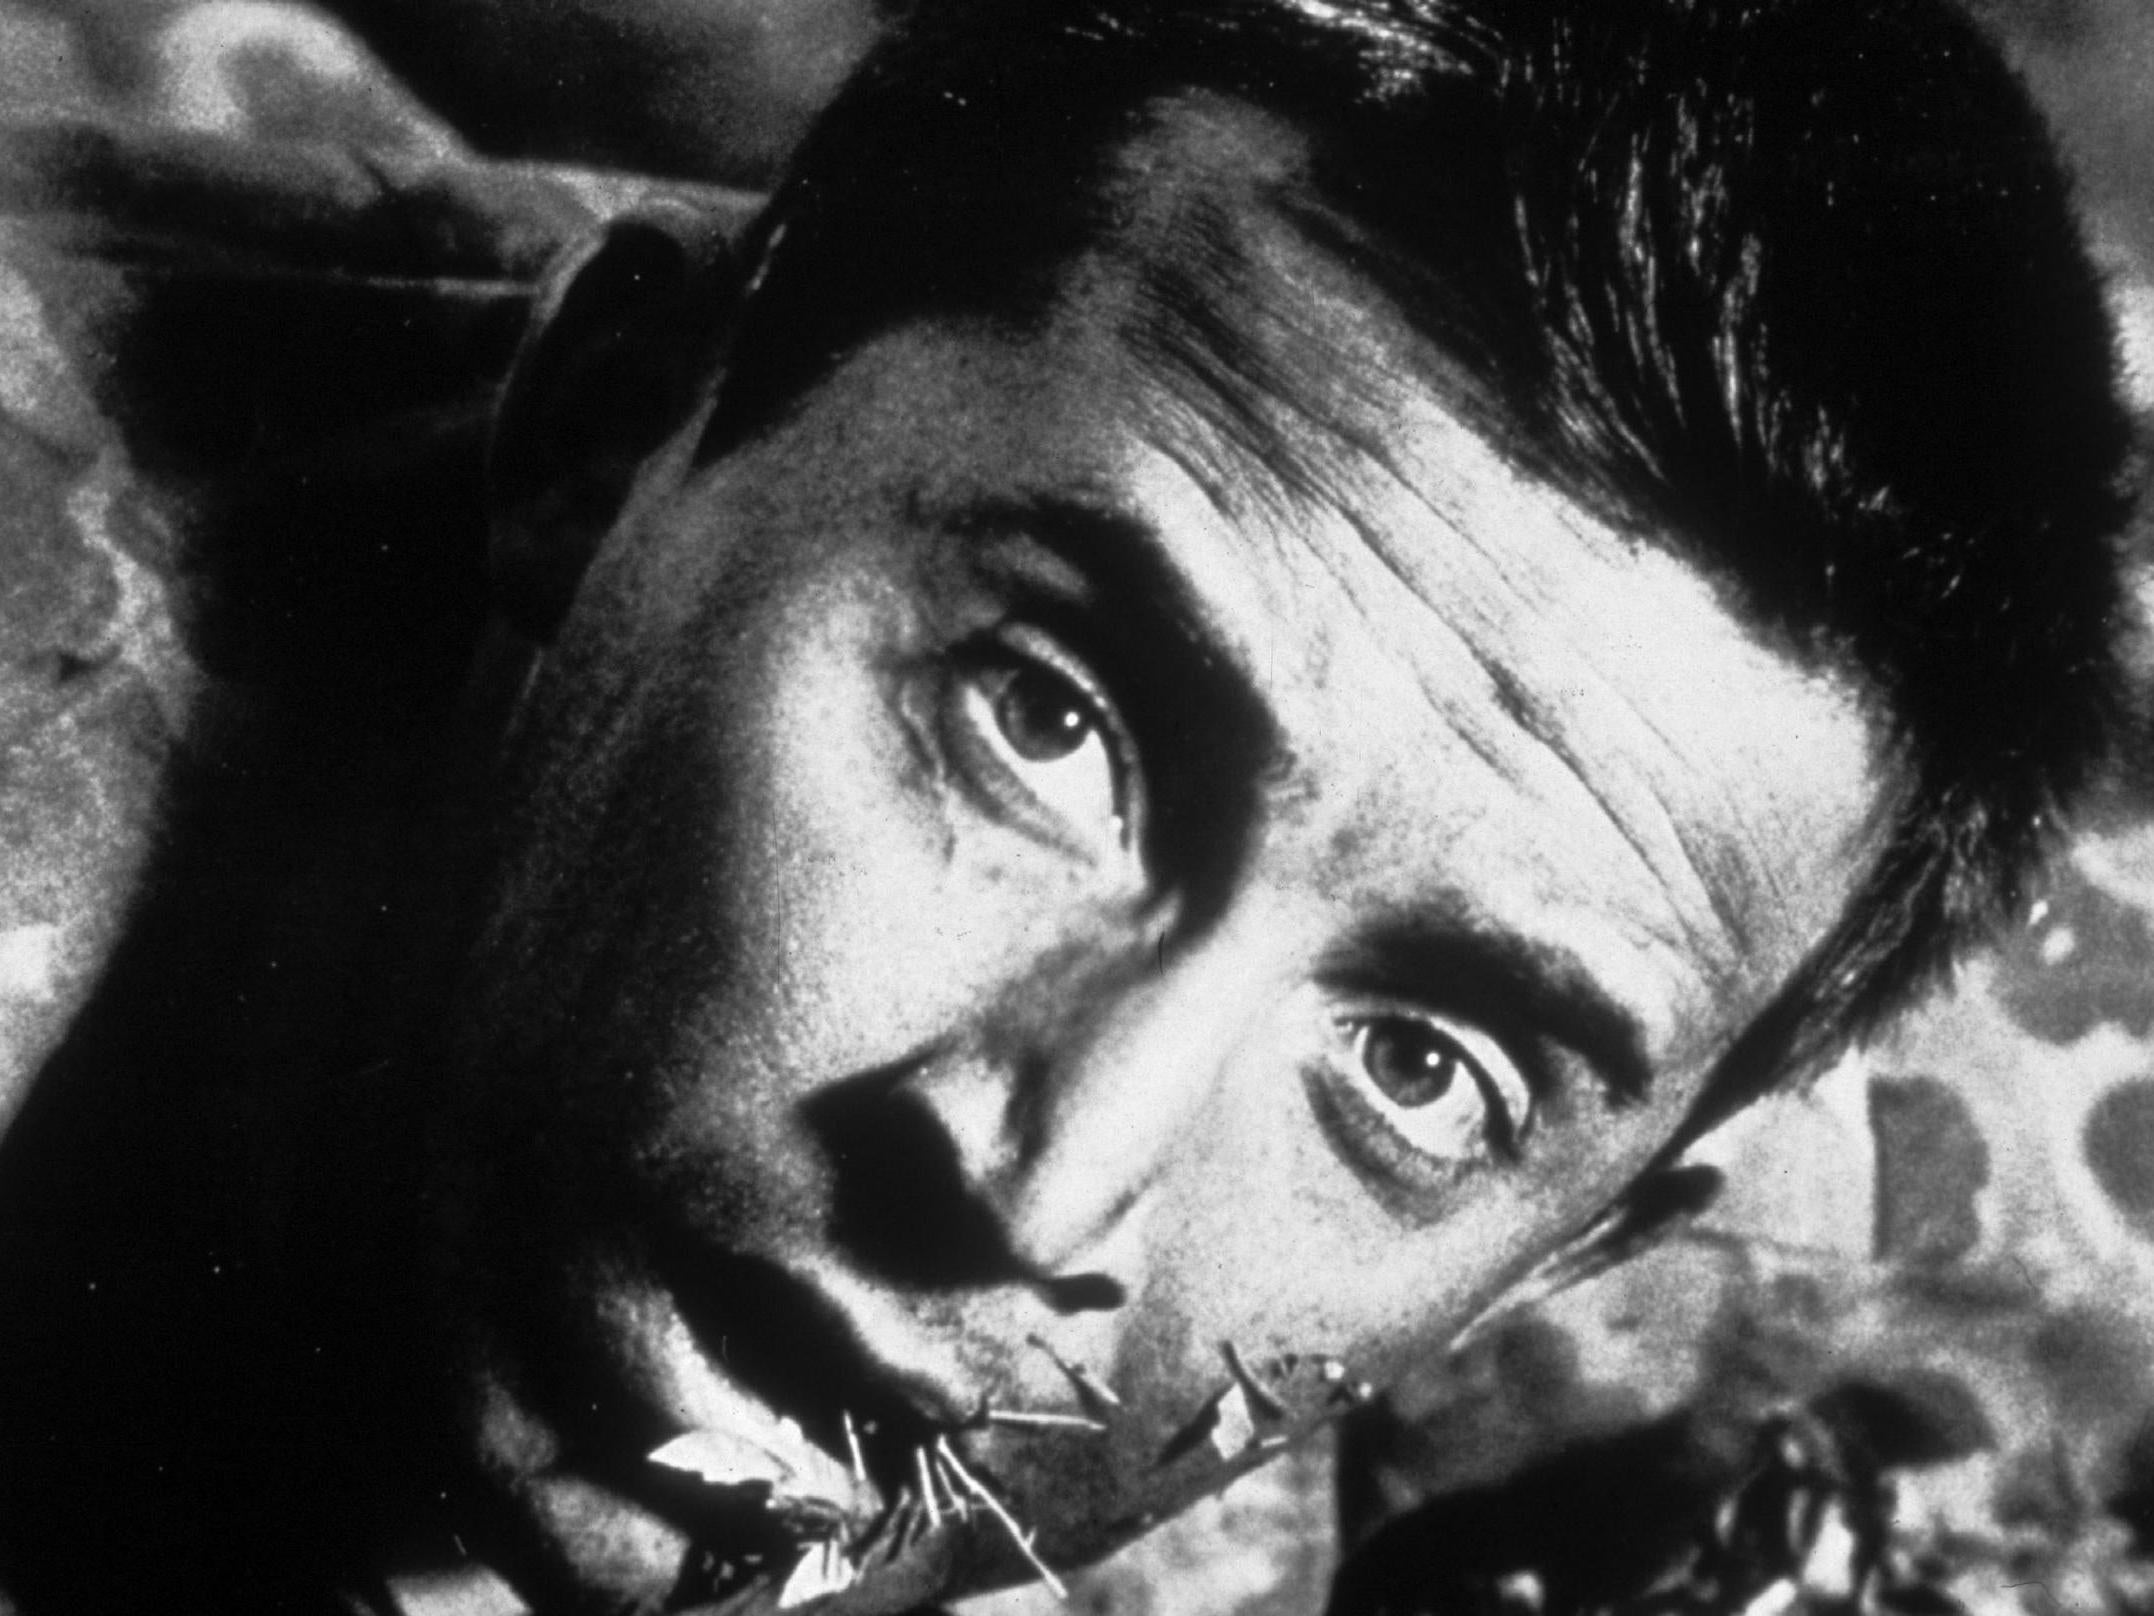 Dr Strangelove Please Keep Eye On Your >> Stanley Kubrick S Films Ranked From Worst To Best The Independent